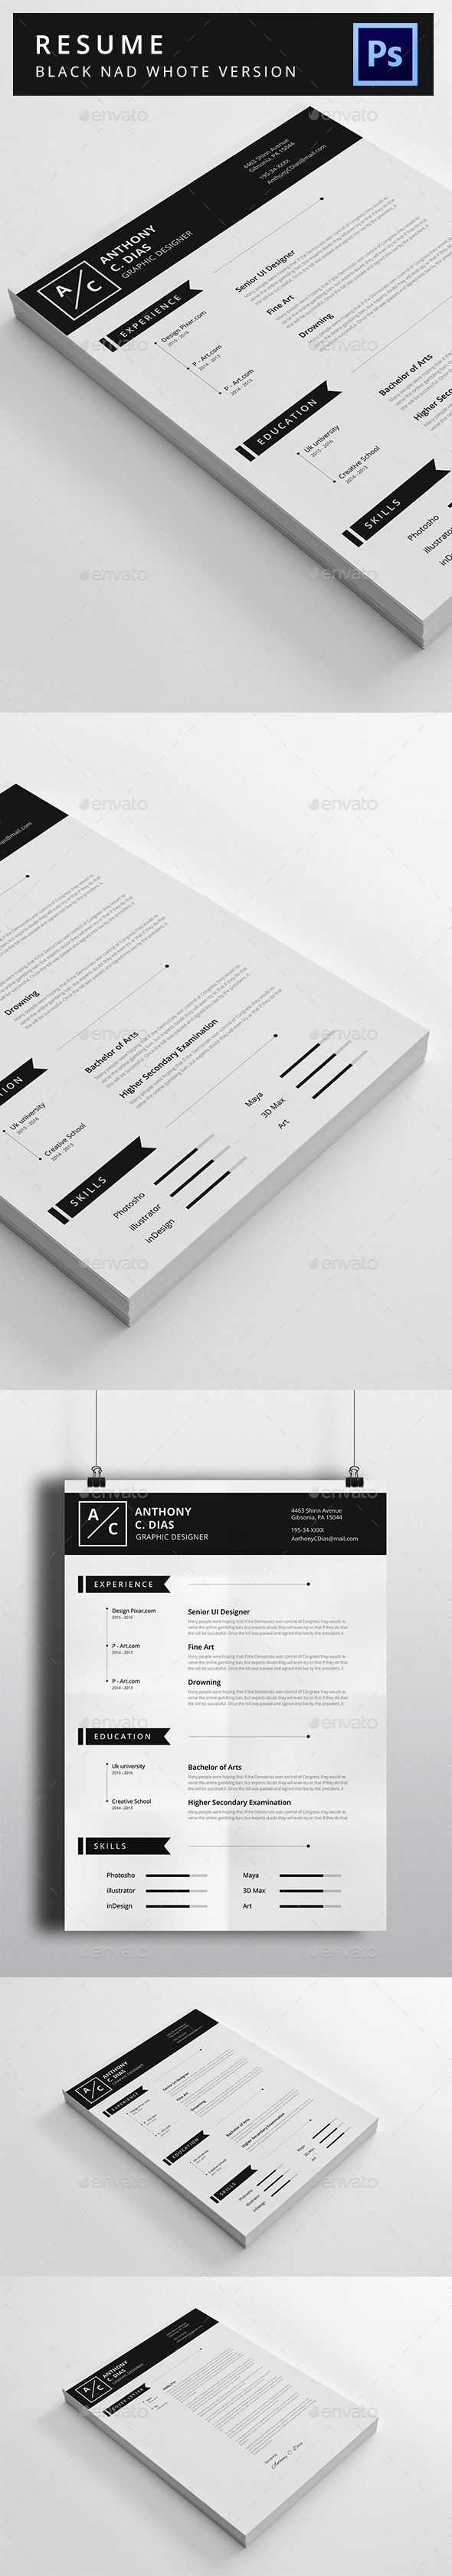 Clean Resume Download%0A Resume  u     PSD Template  resume clean  resume template  u     Download     https